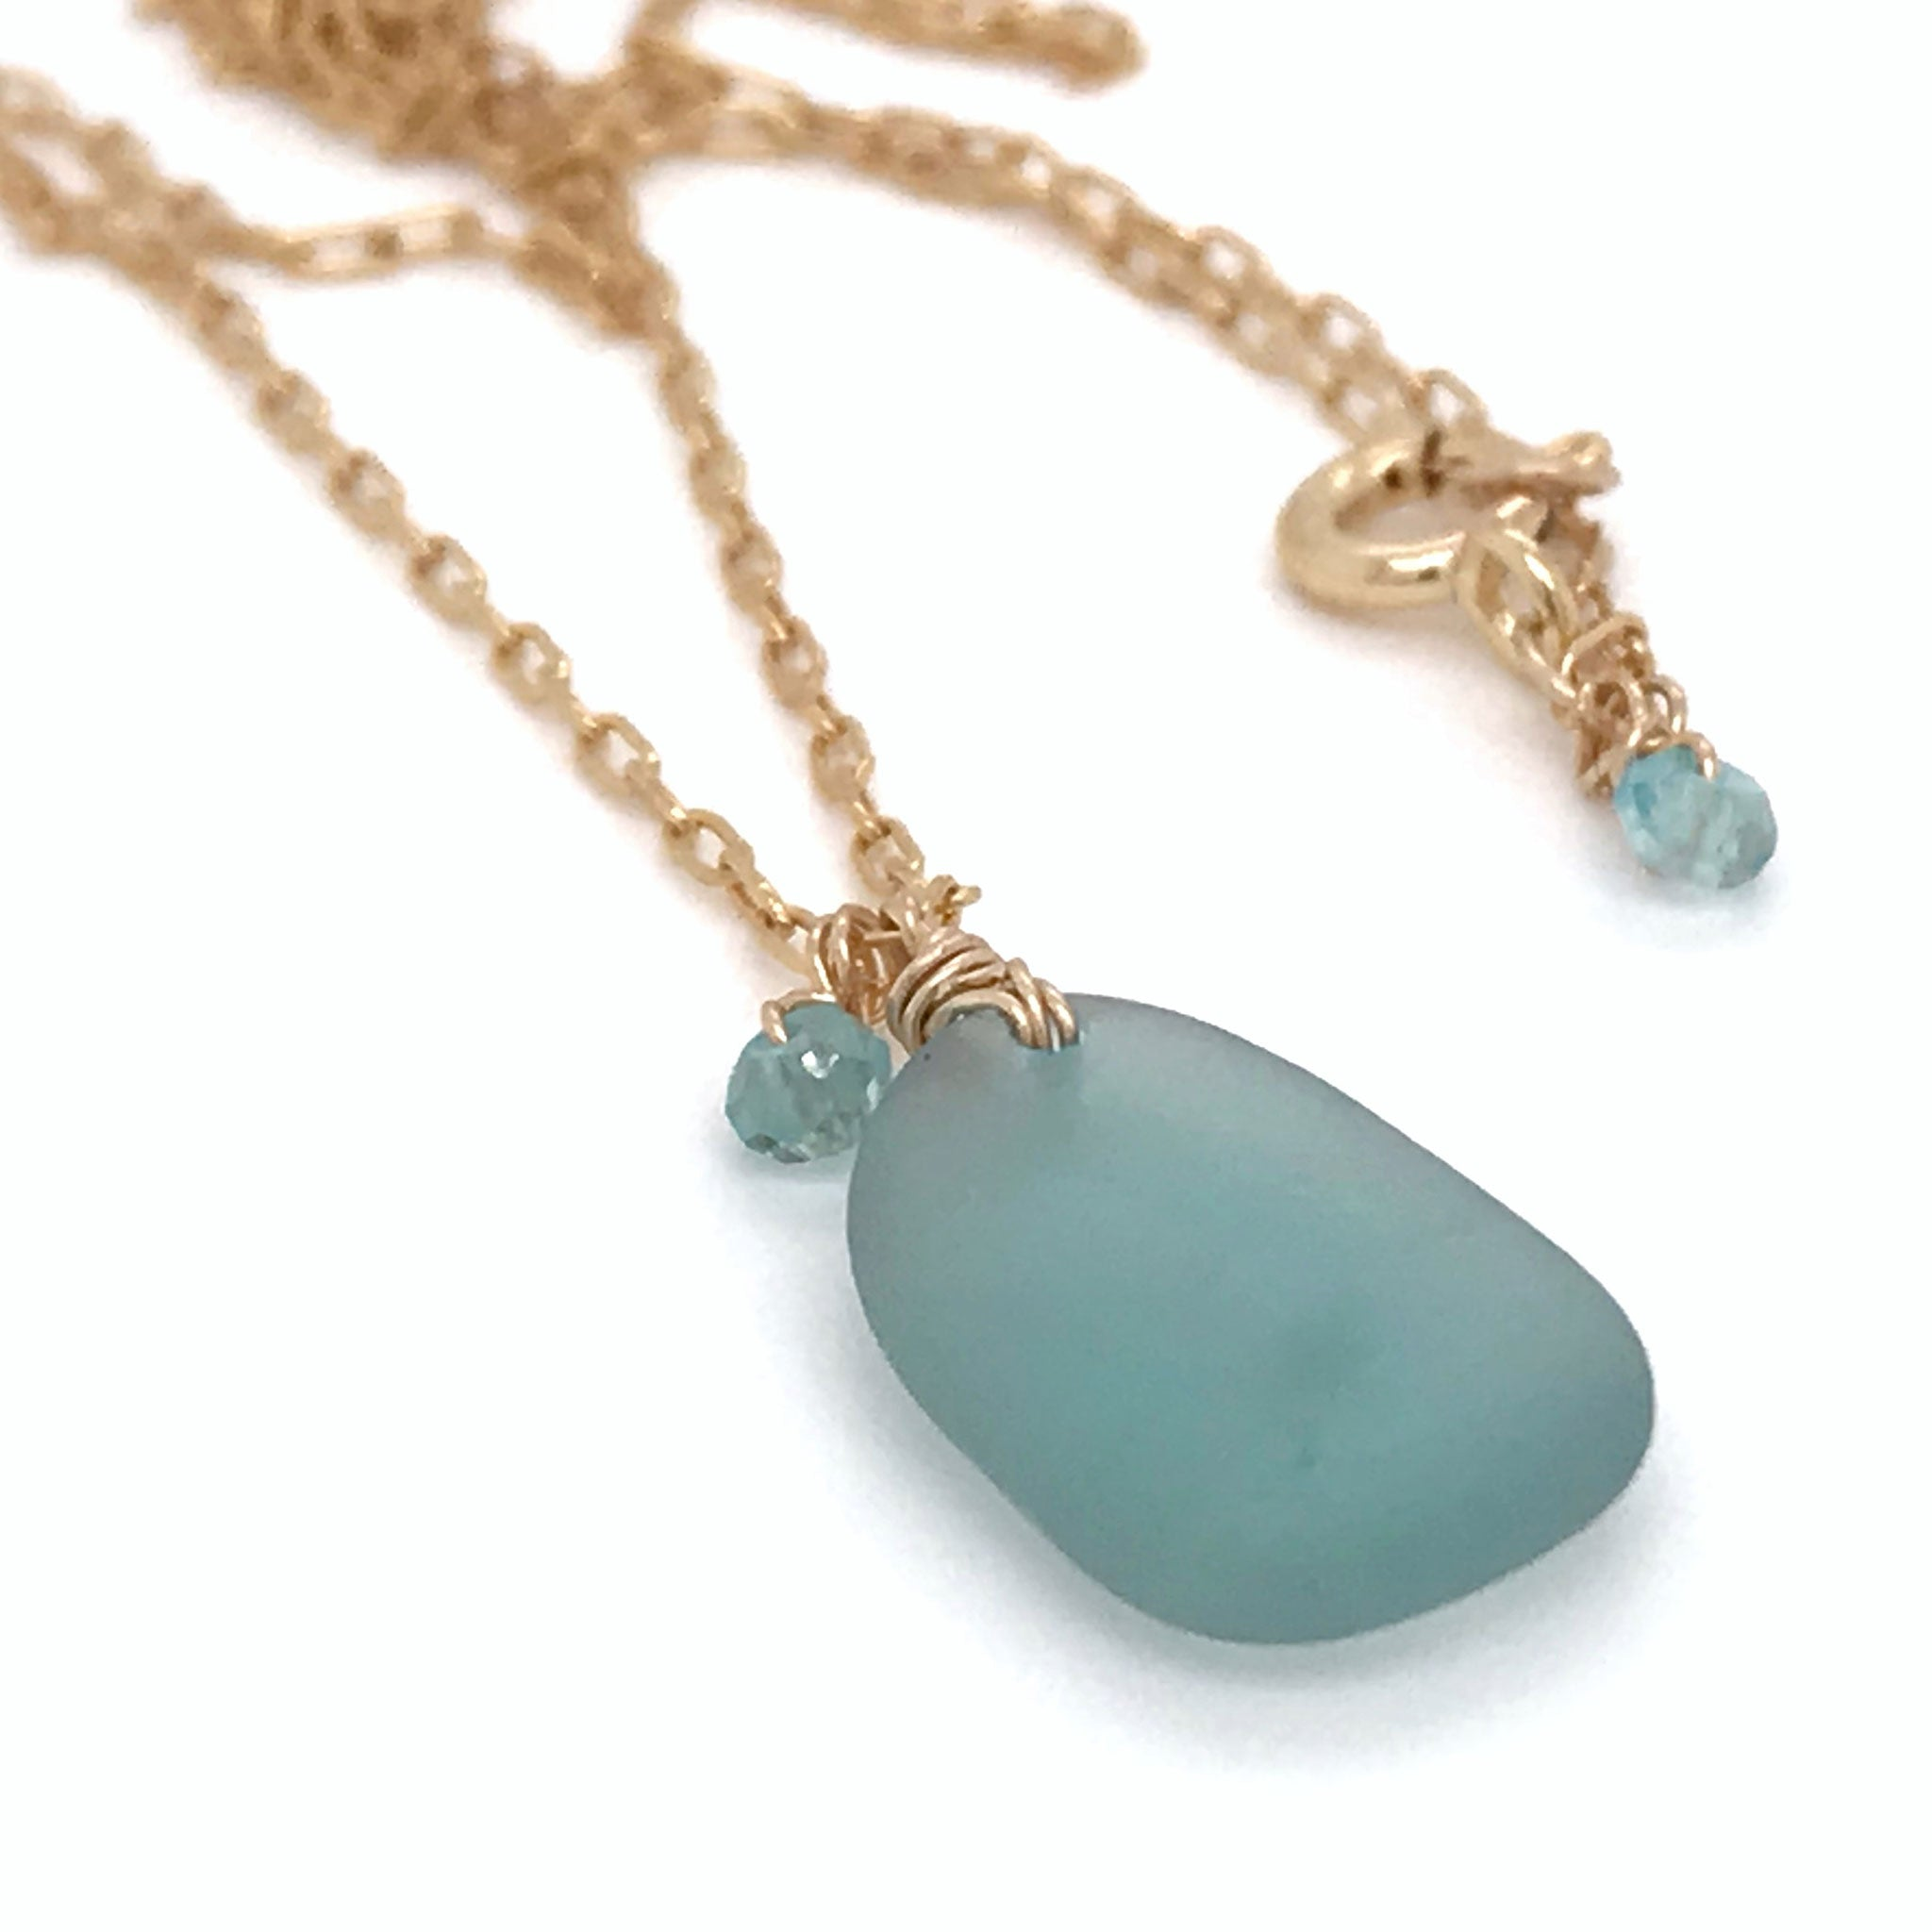 aqua seaglass necklace gold chain aquamarine stones kriket broadhurst jewellery